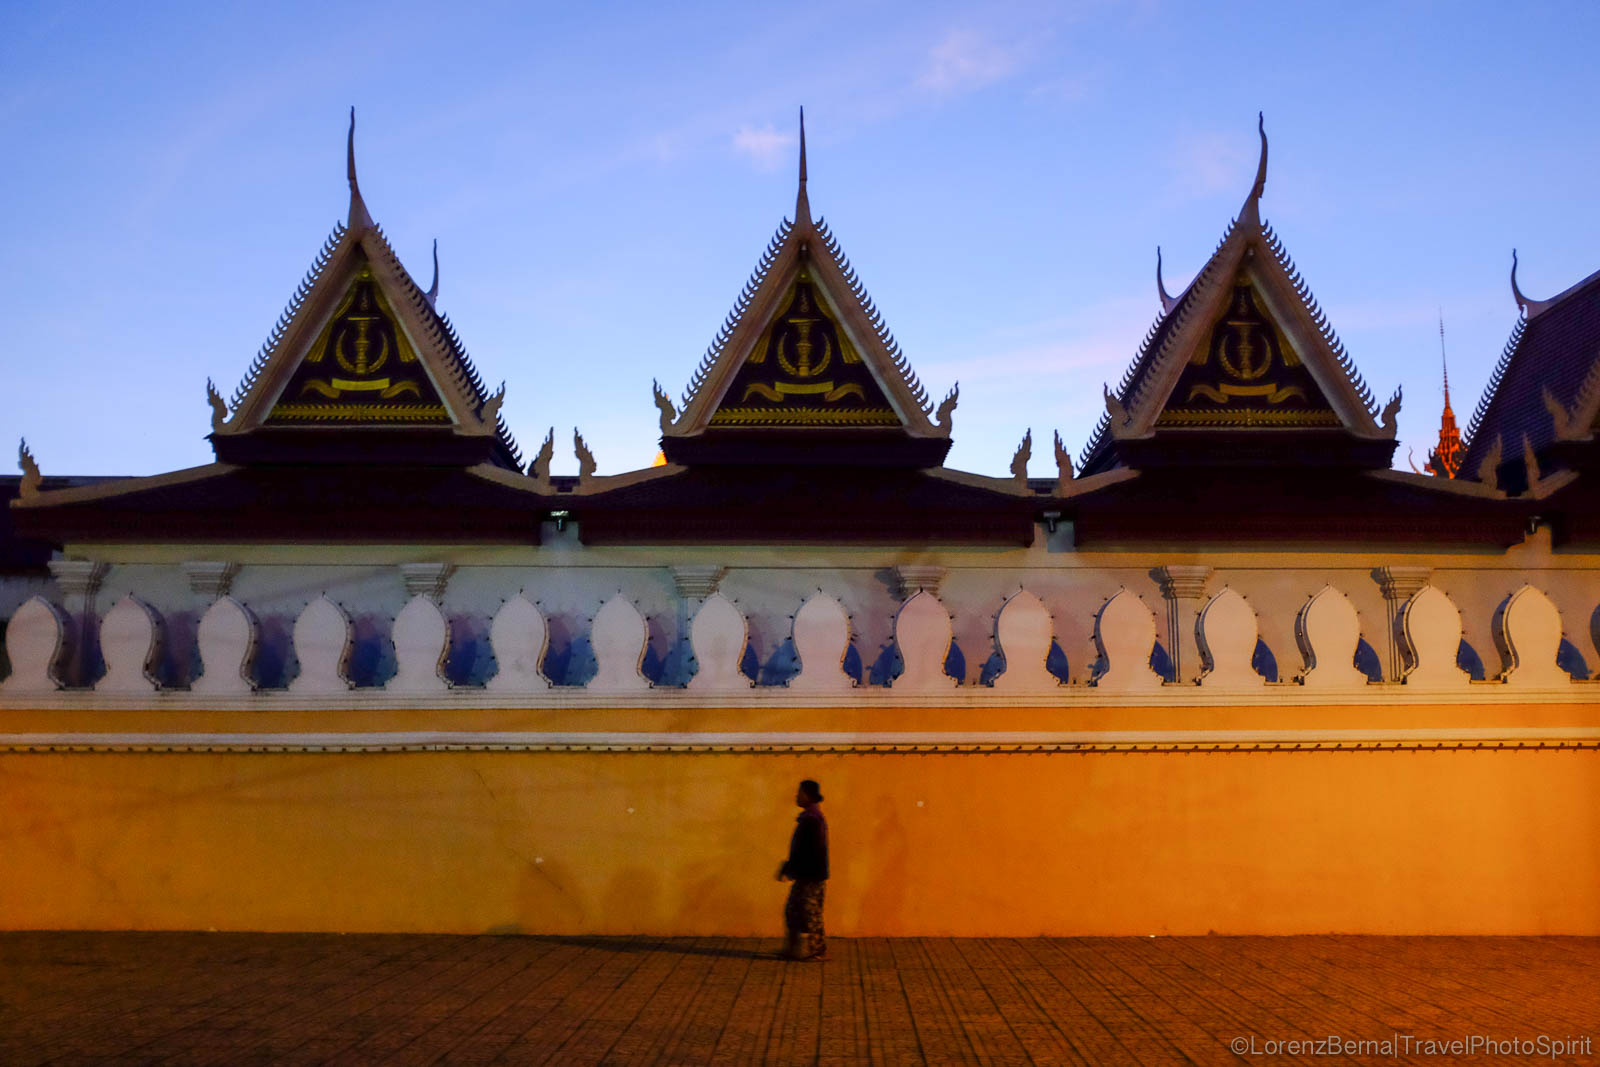 Evening walk alongside the Royal Palace, in Phnom Penh - A Lorenz Berna travel photography of Cambodia